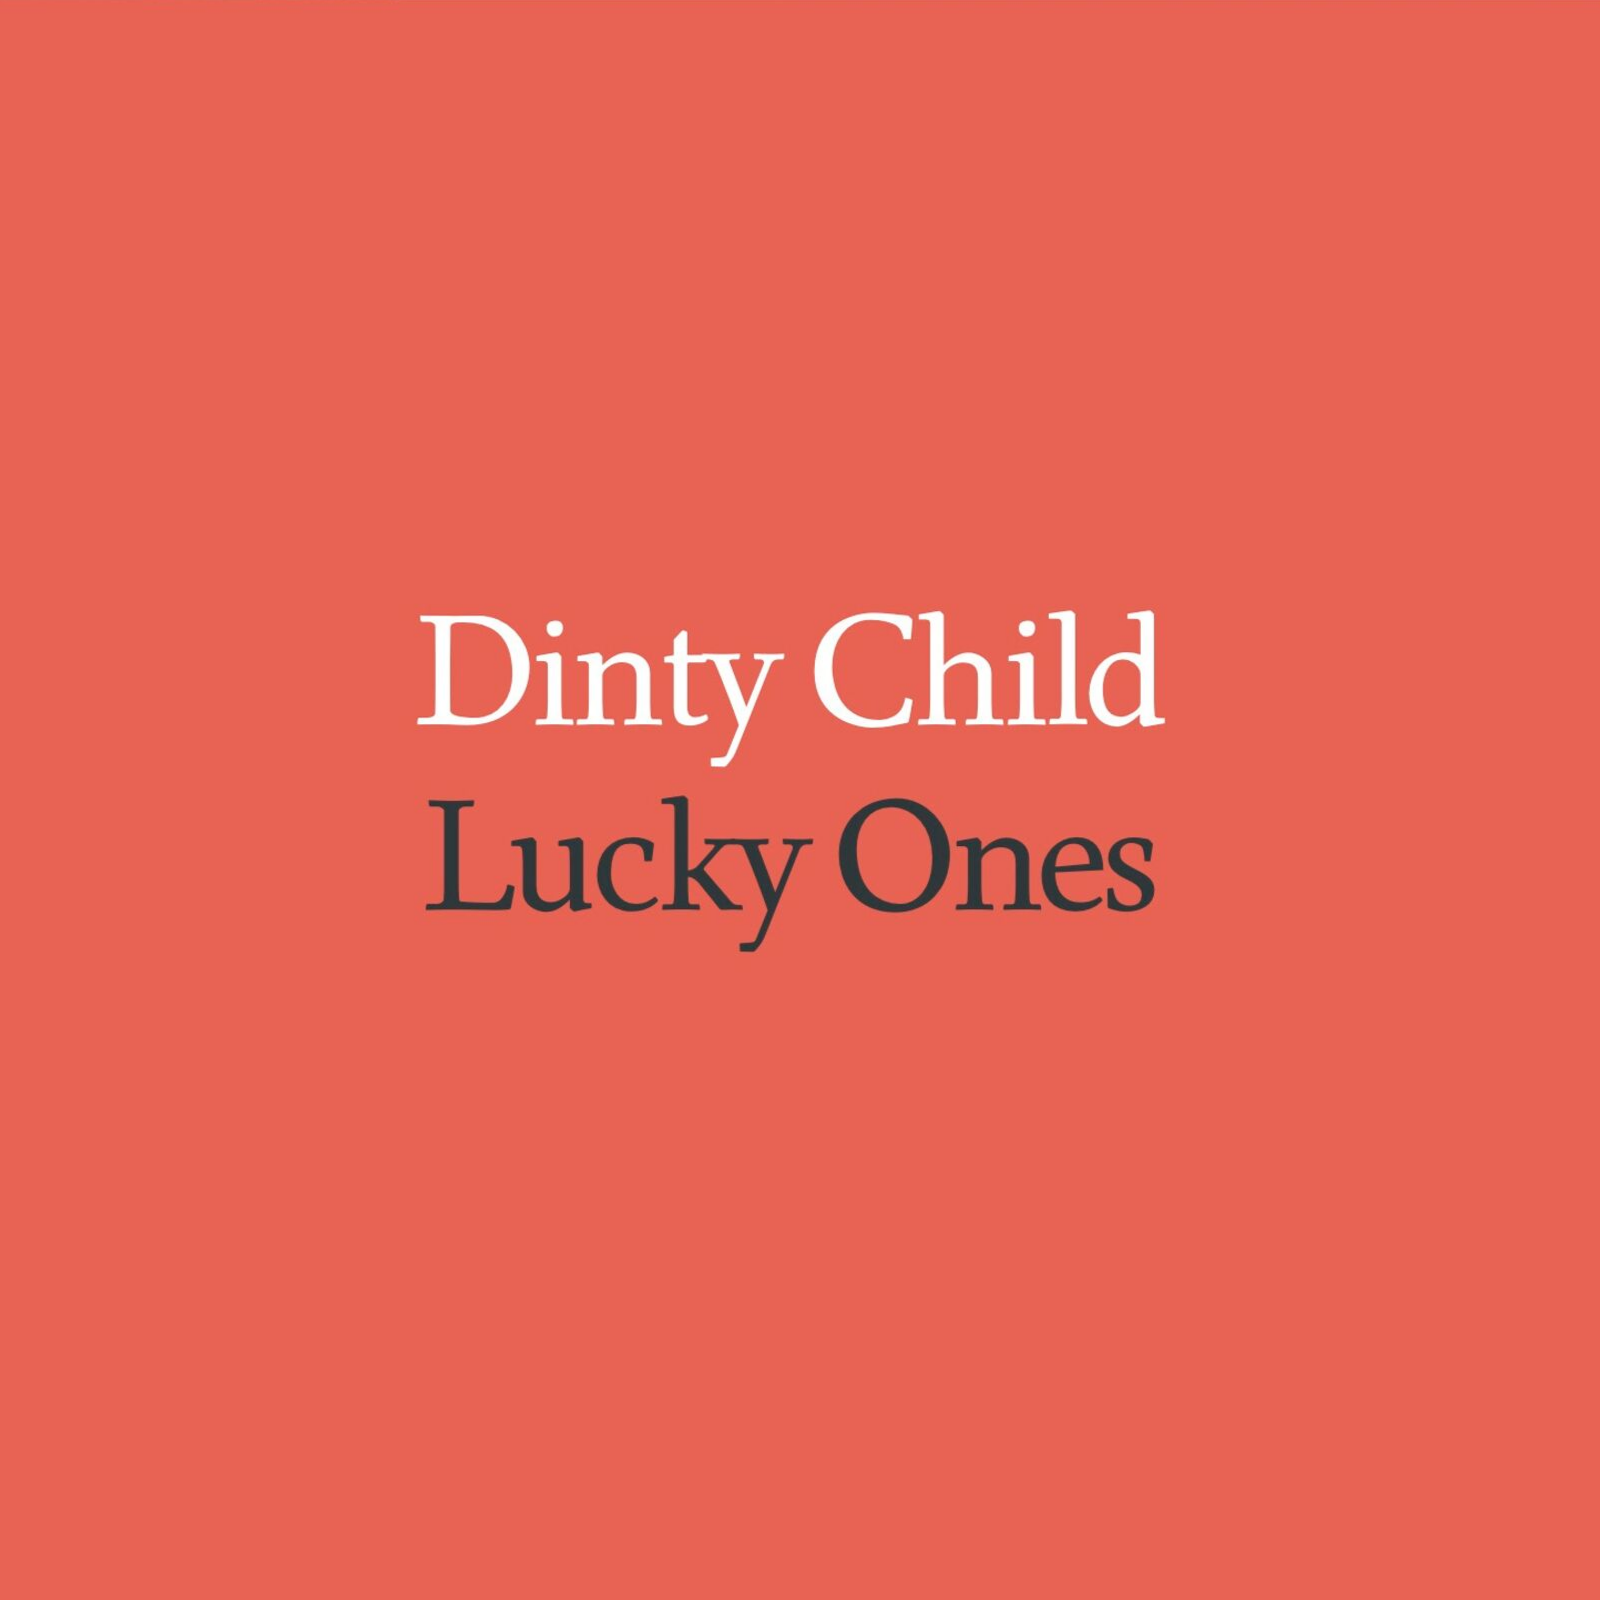 Dinty Child — Lucky Ones (Album) - 1600x1600.png